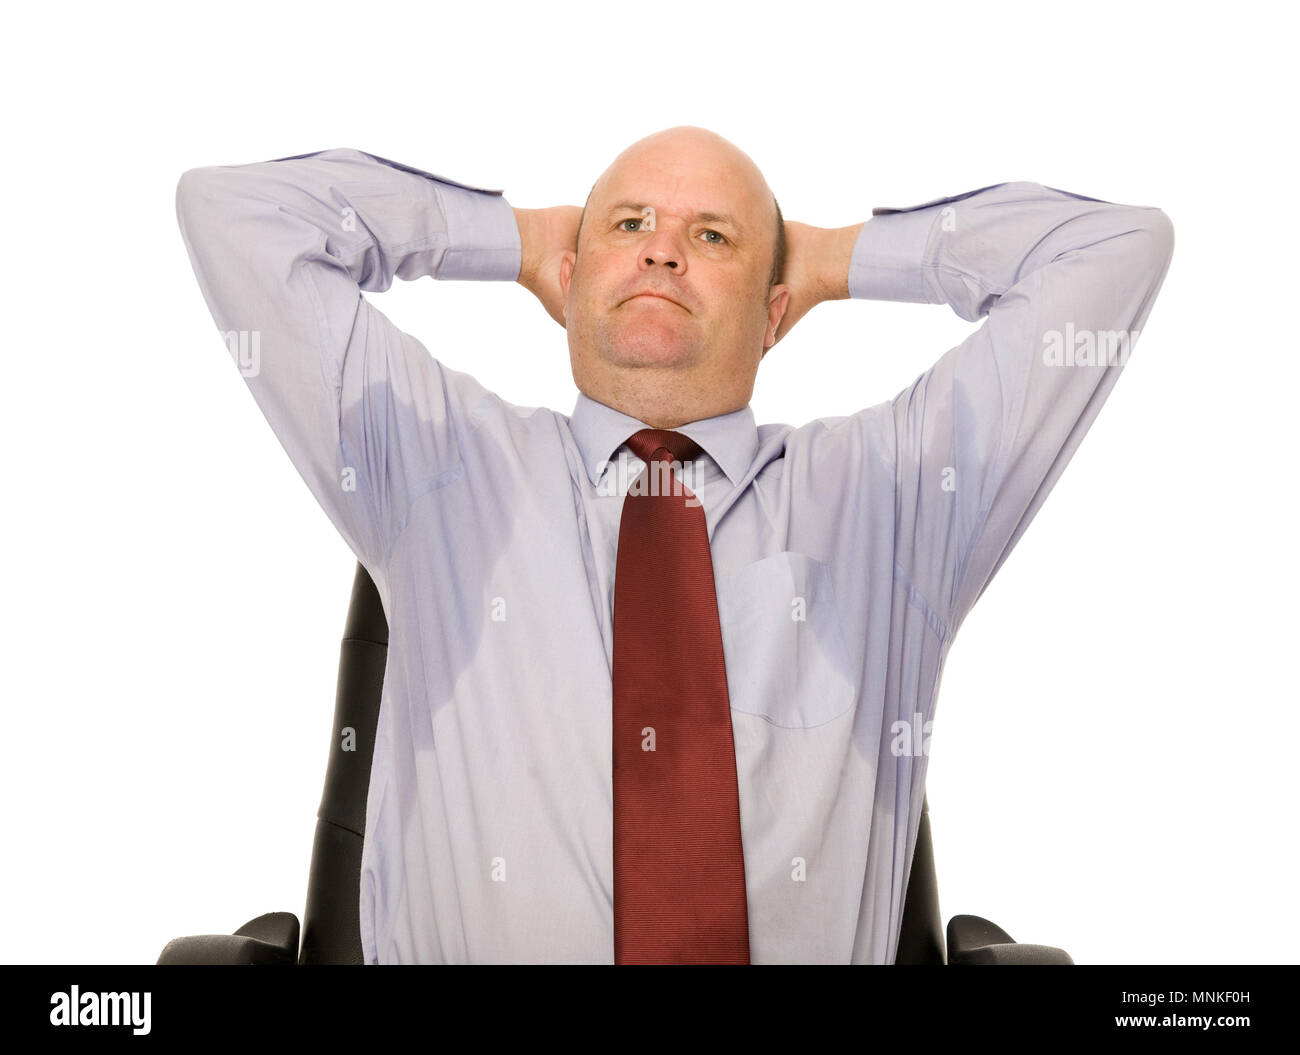 A perspiring businessman, unaware of the sweat stains. - Stock Image